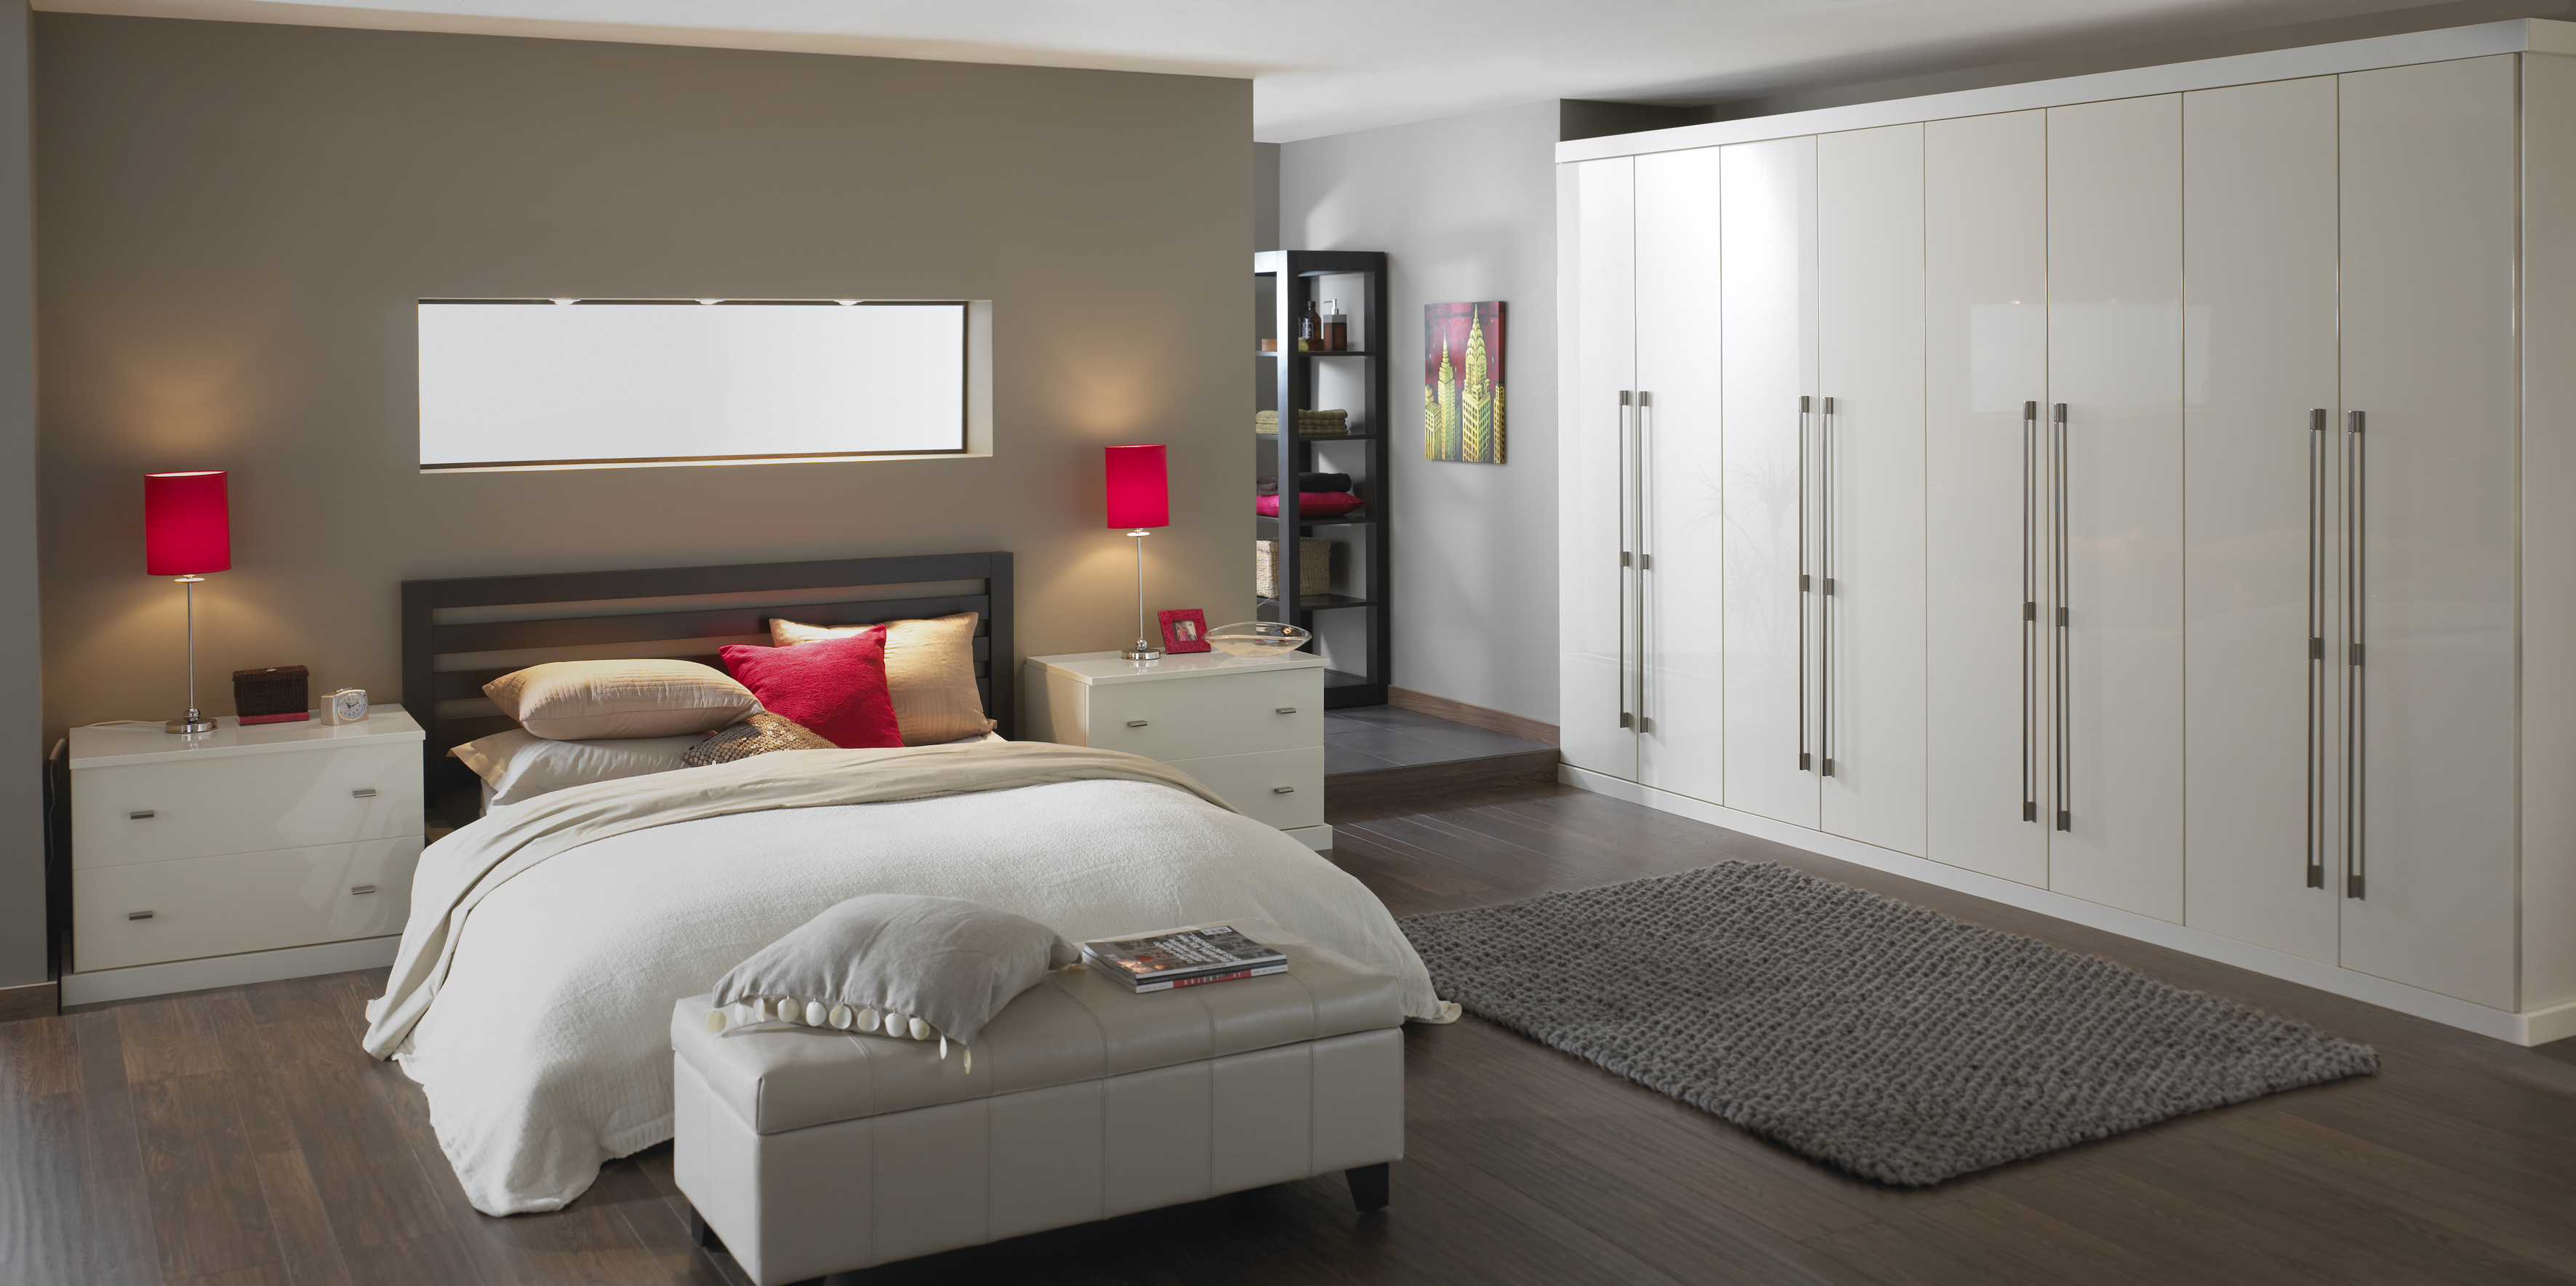 Fitted bedrooms in sittingbourne wow interior design - Beautiful bedroom built in cupboards ...